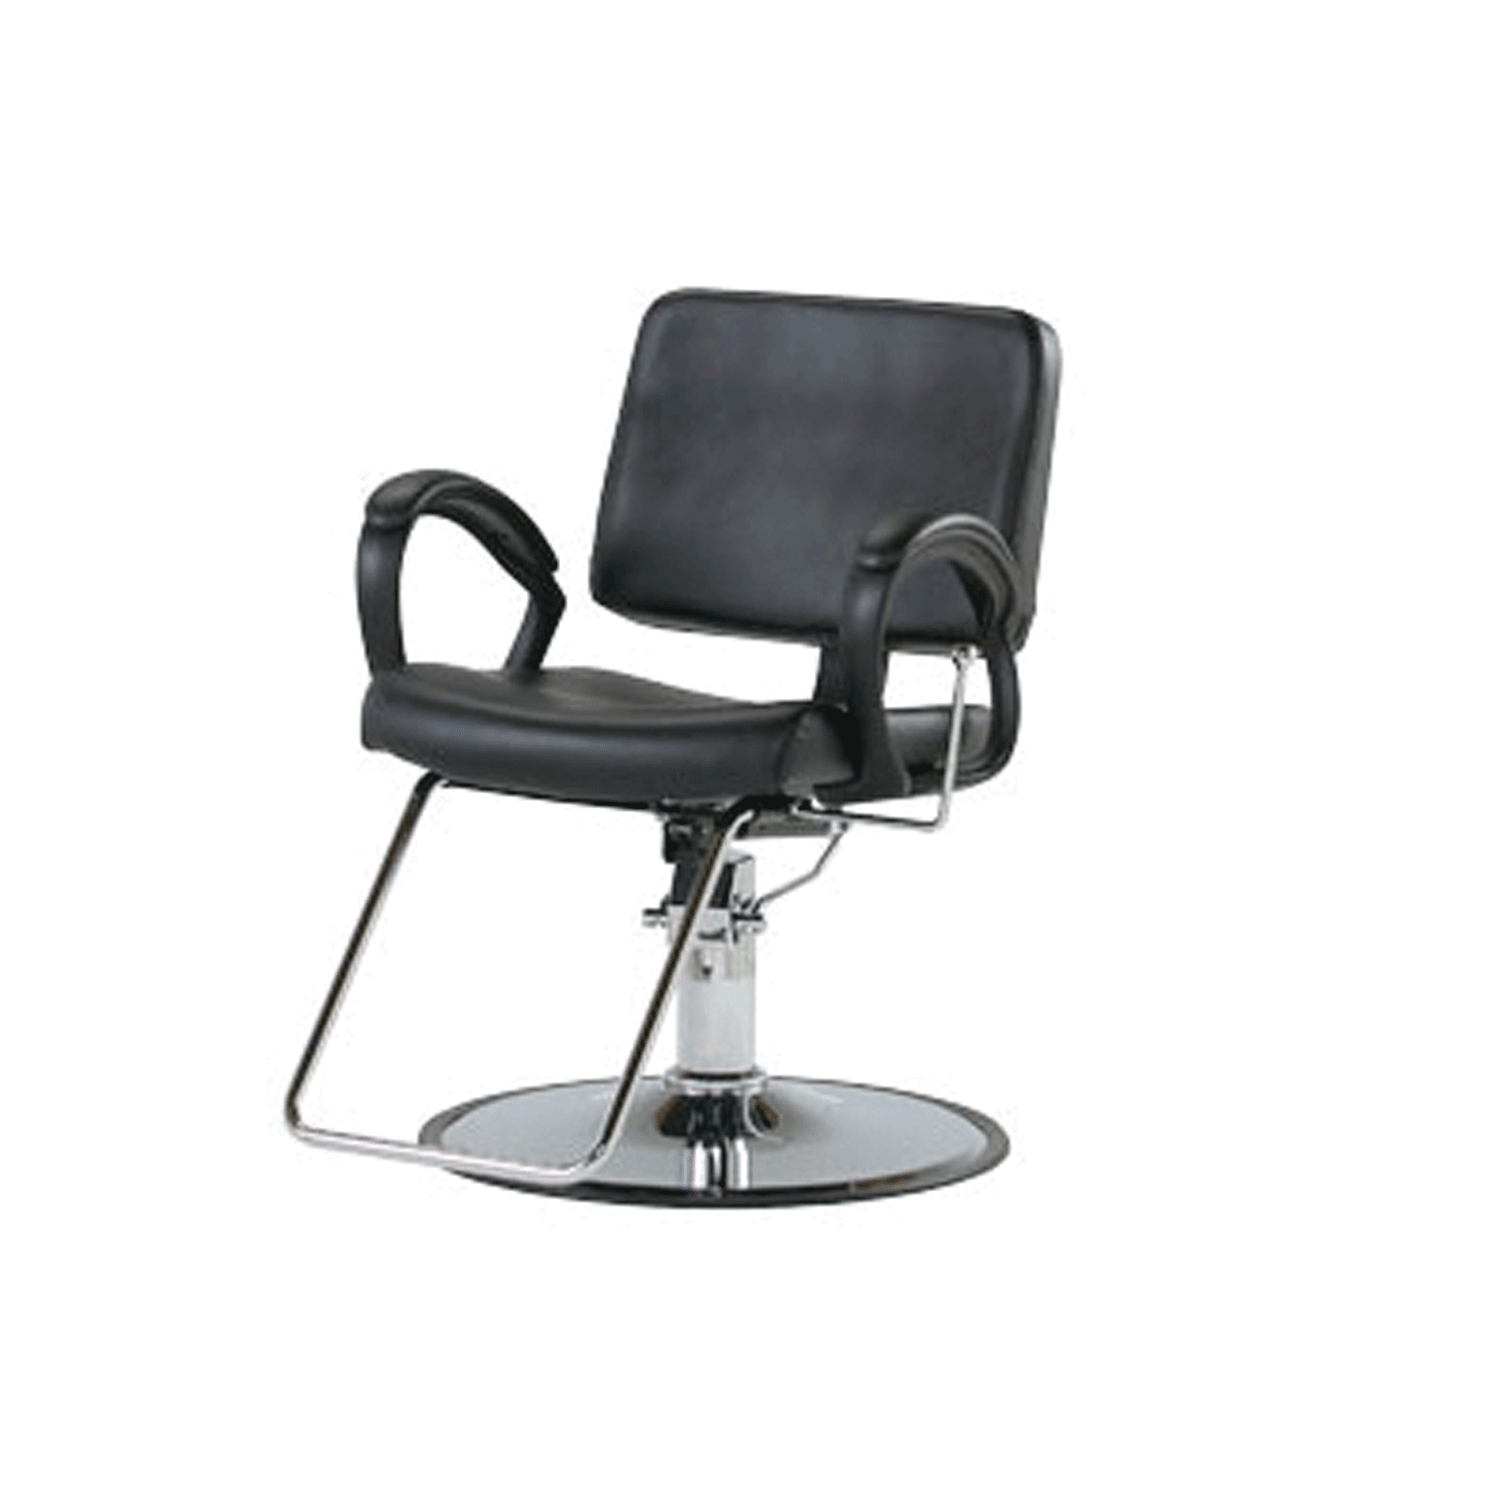 all purpose salon chairs small white chair for bedroom dryer stools sally beauty ava with base